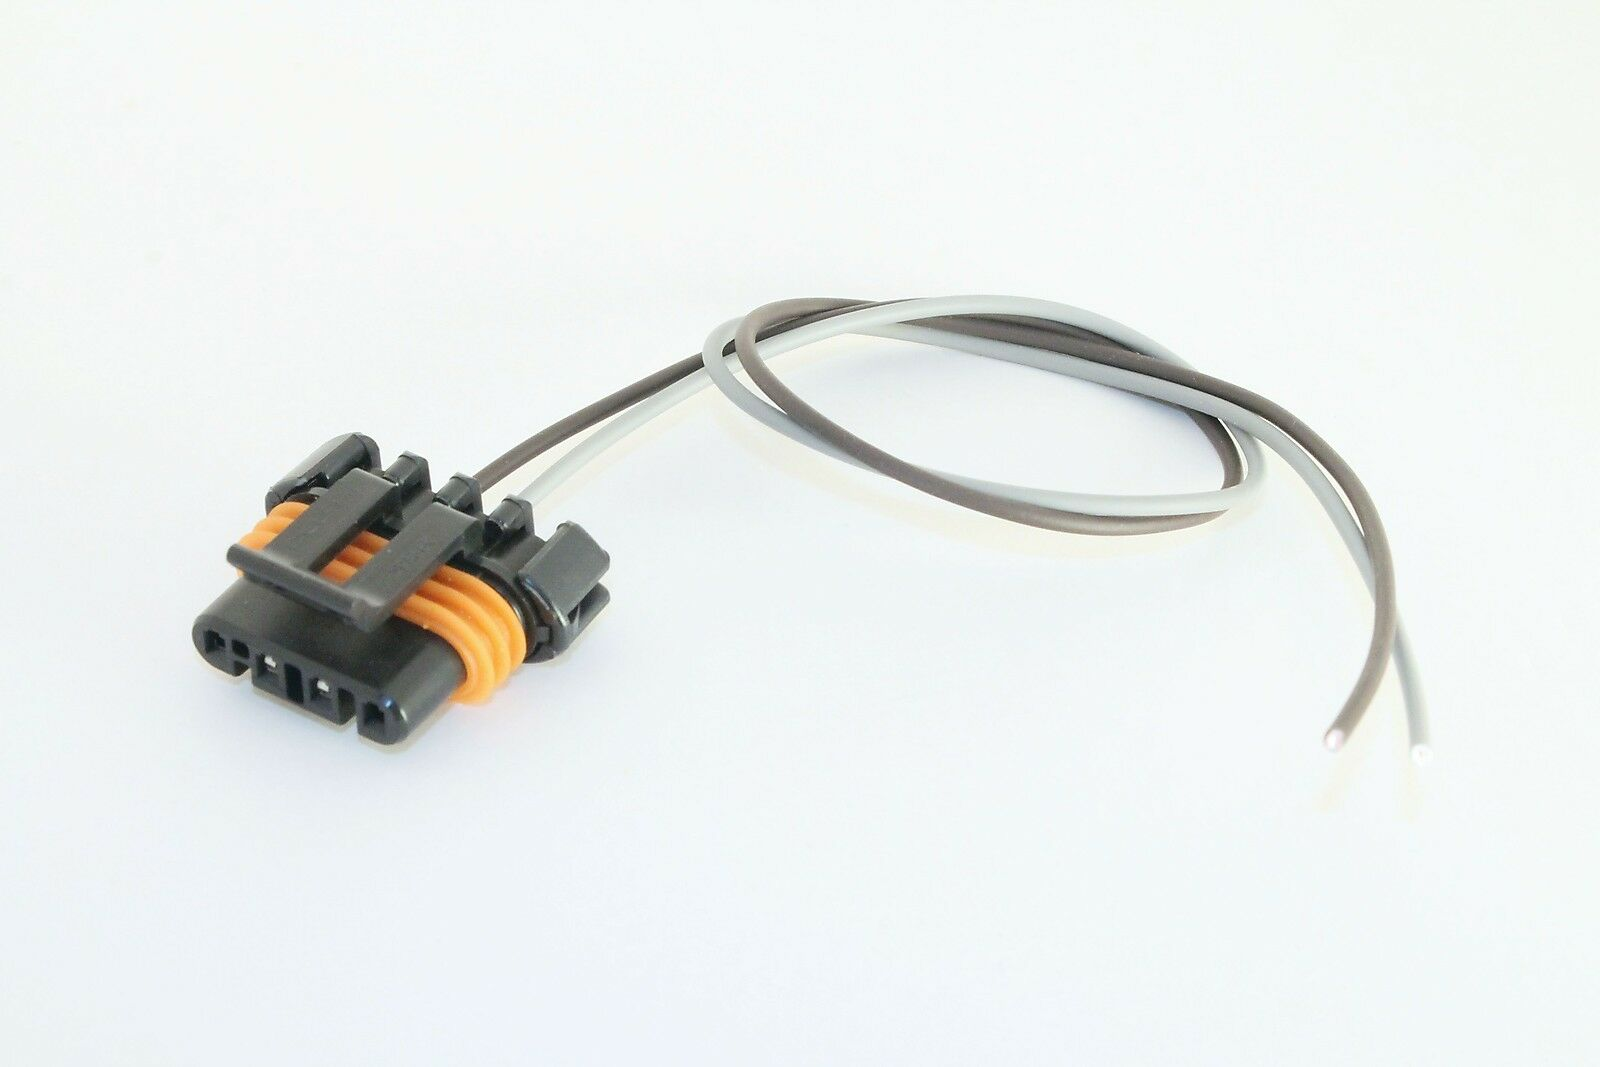 Gm Alternator Connector Pigtail 2 Wire Cs130d Ad230 Ad237 And Vehicle Wiring Pigtails 1 Of See More